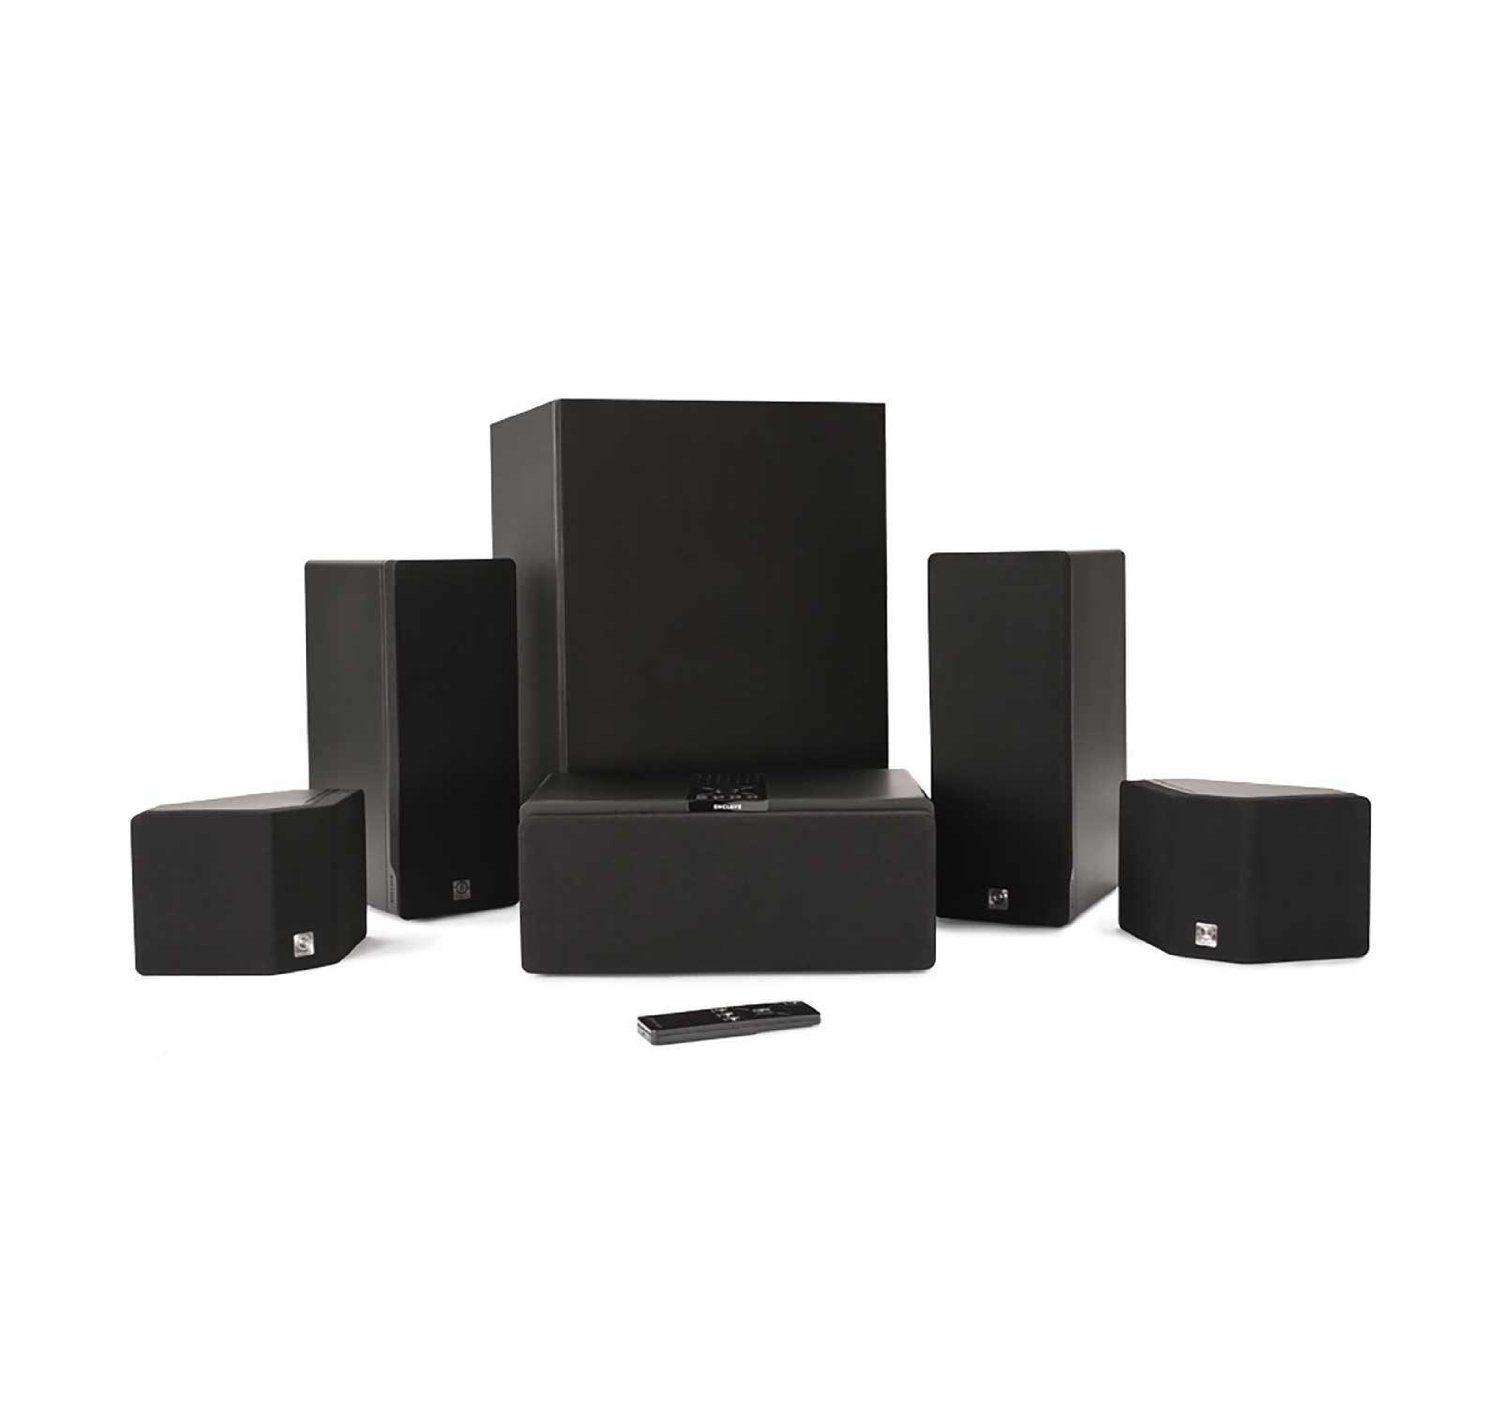 The 7 Best Home Theater Starter Kits to Buy in 2018